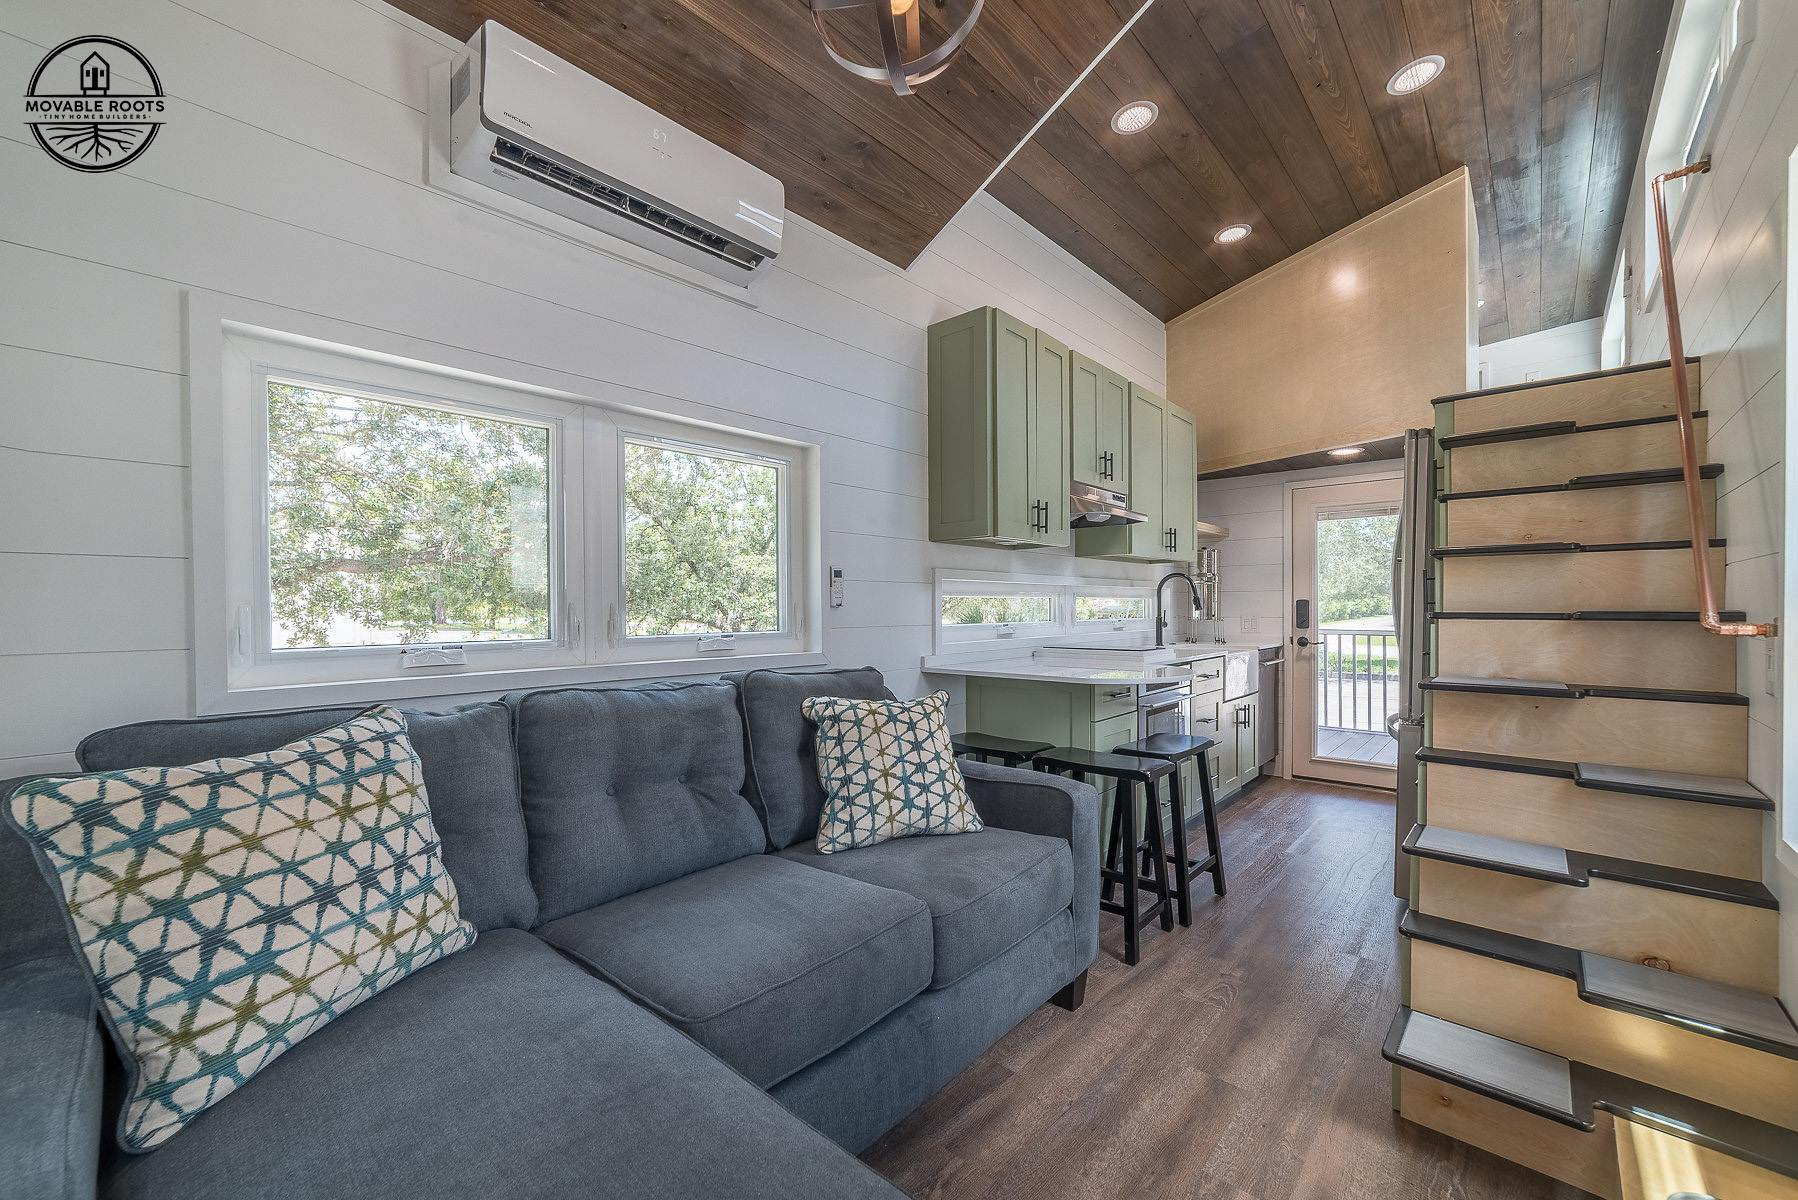 3 Bedroom Elmore Tiny House On Wheels By Movable Roots Dream Big Live Tiny Co